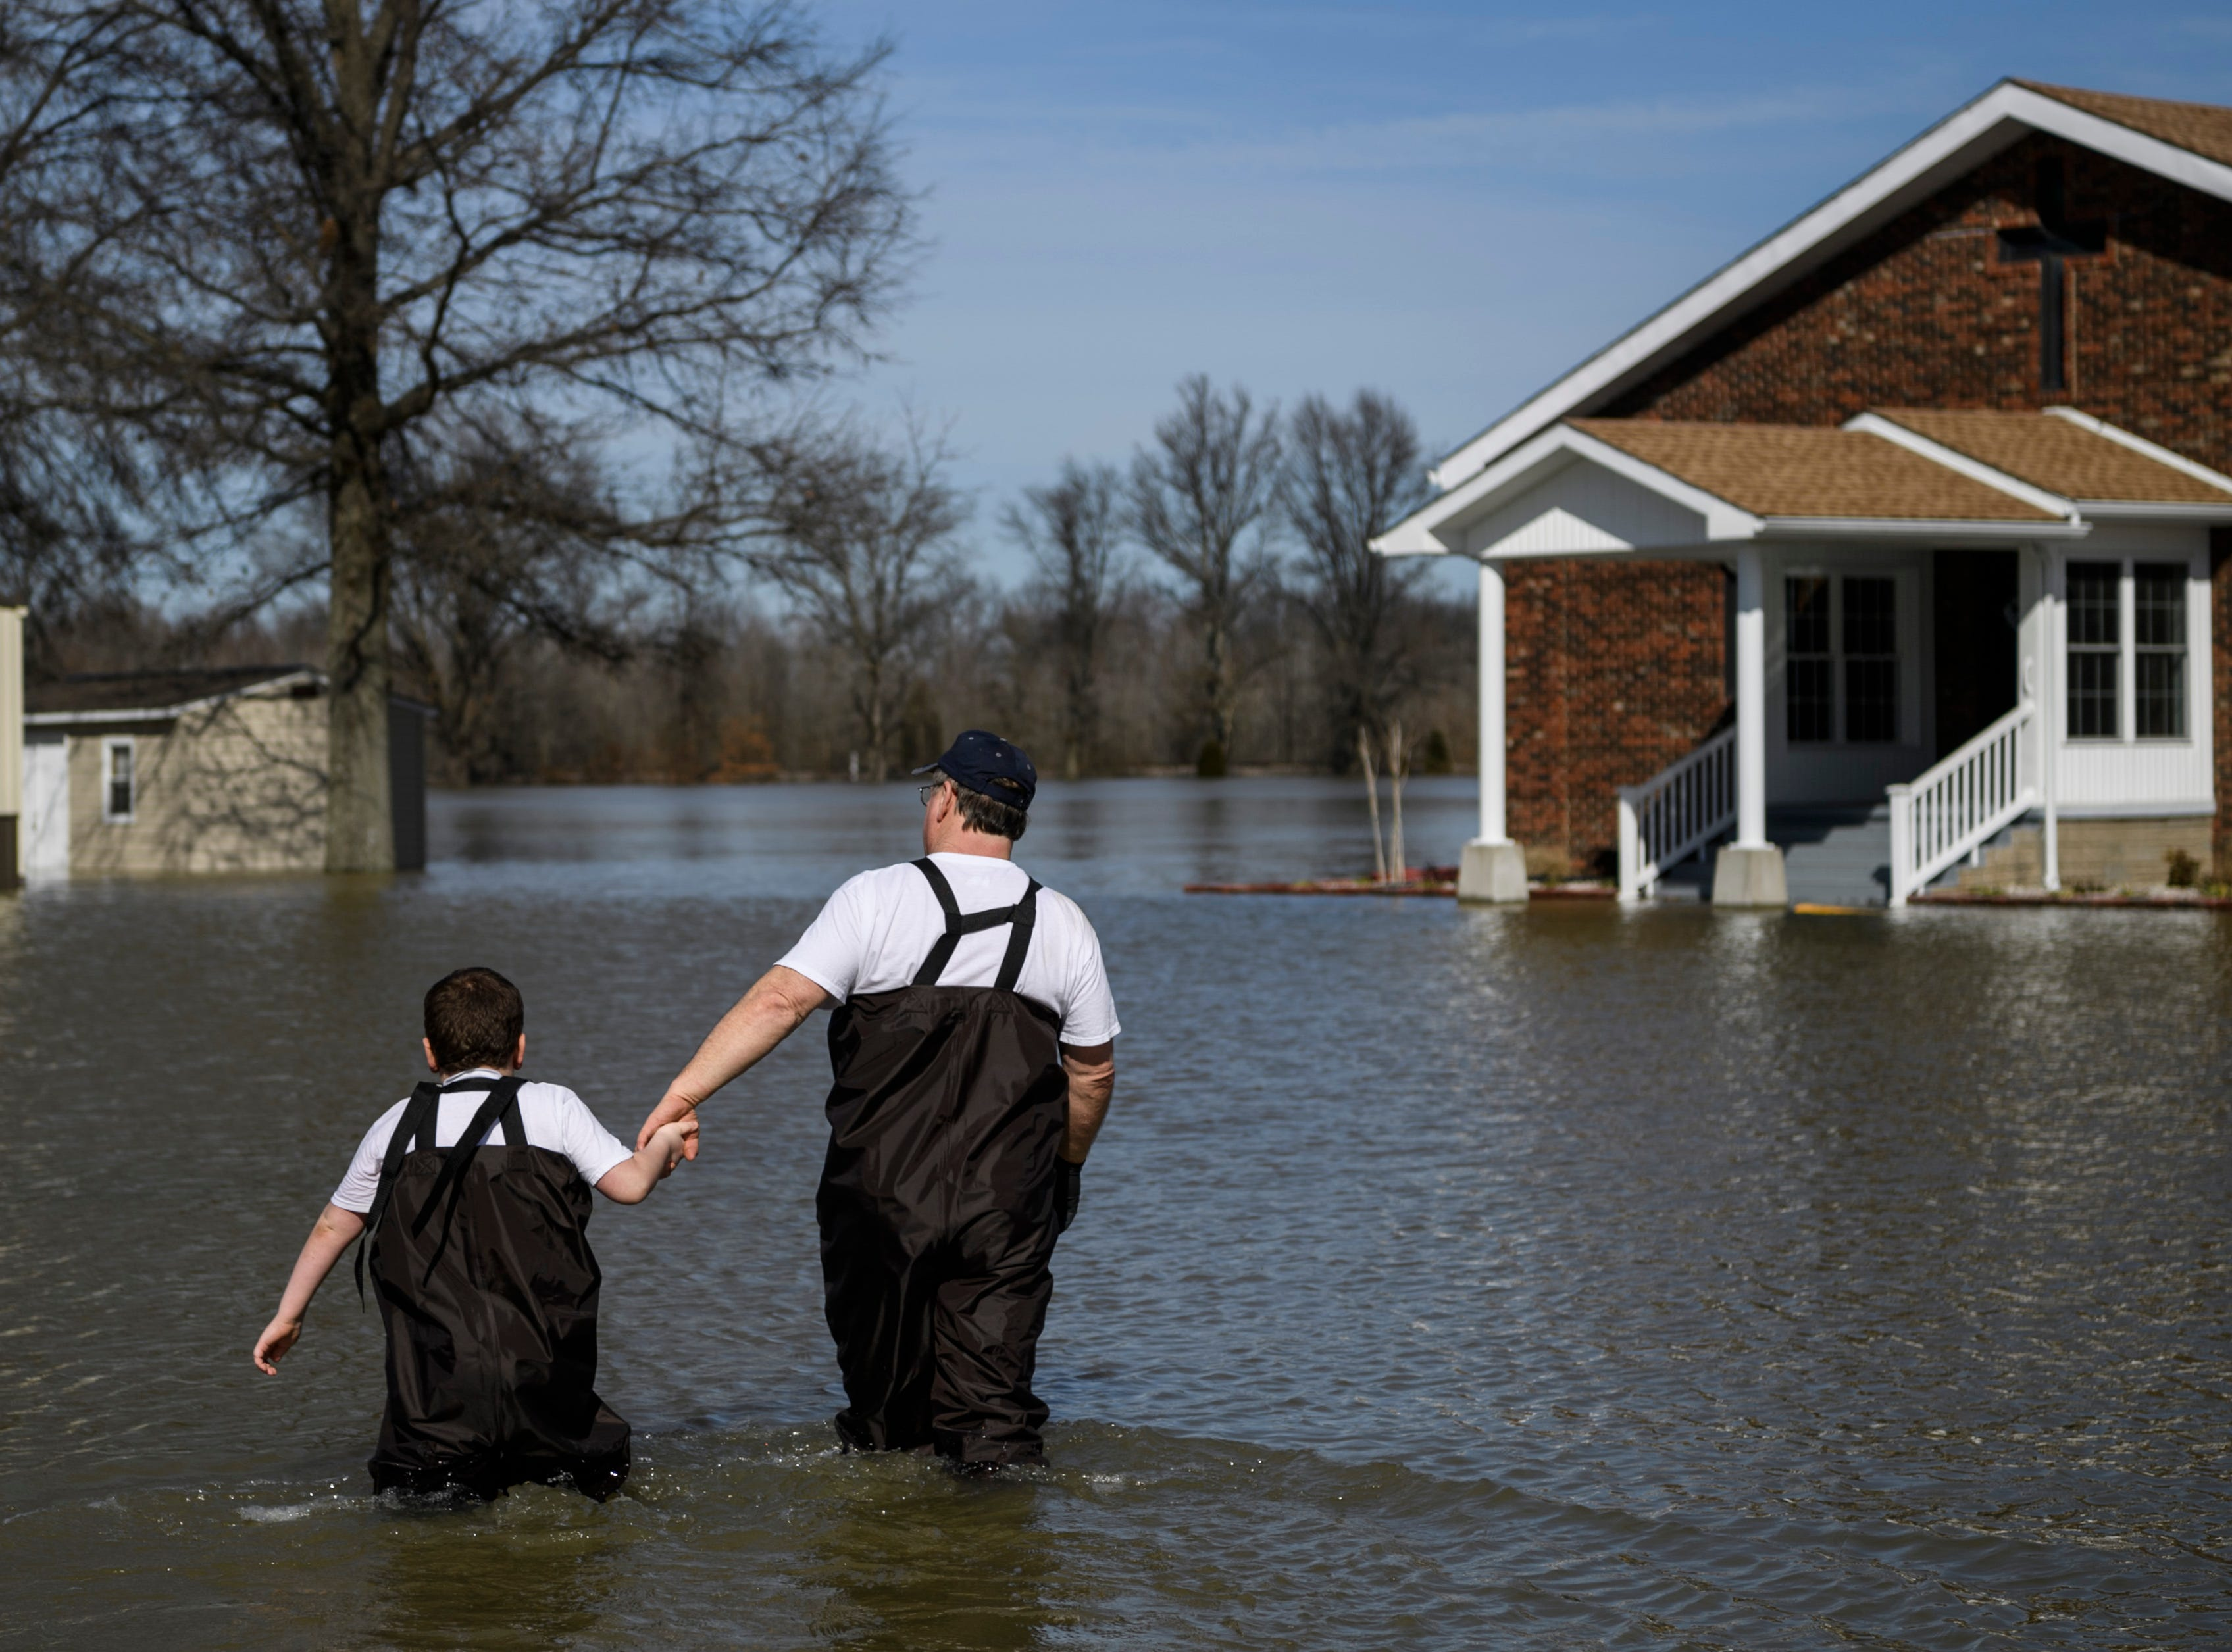 Gabriel Skaggs, 7, and Rev. Barry Skaggs wade through flood water between their home (left) and Beals Pentecost Church (right), where Barry is a pastor, in Reed, Kentucky, Tuesday, Feb. 27, 2018. Gabriel spent time playing in the water around his home and didn't miss any school days because he is home-schooled.